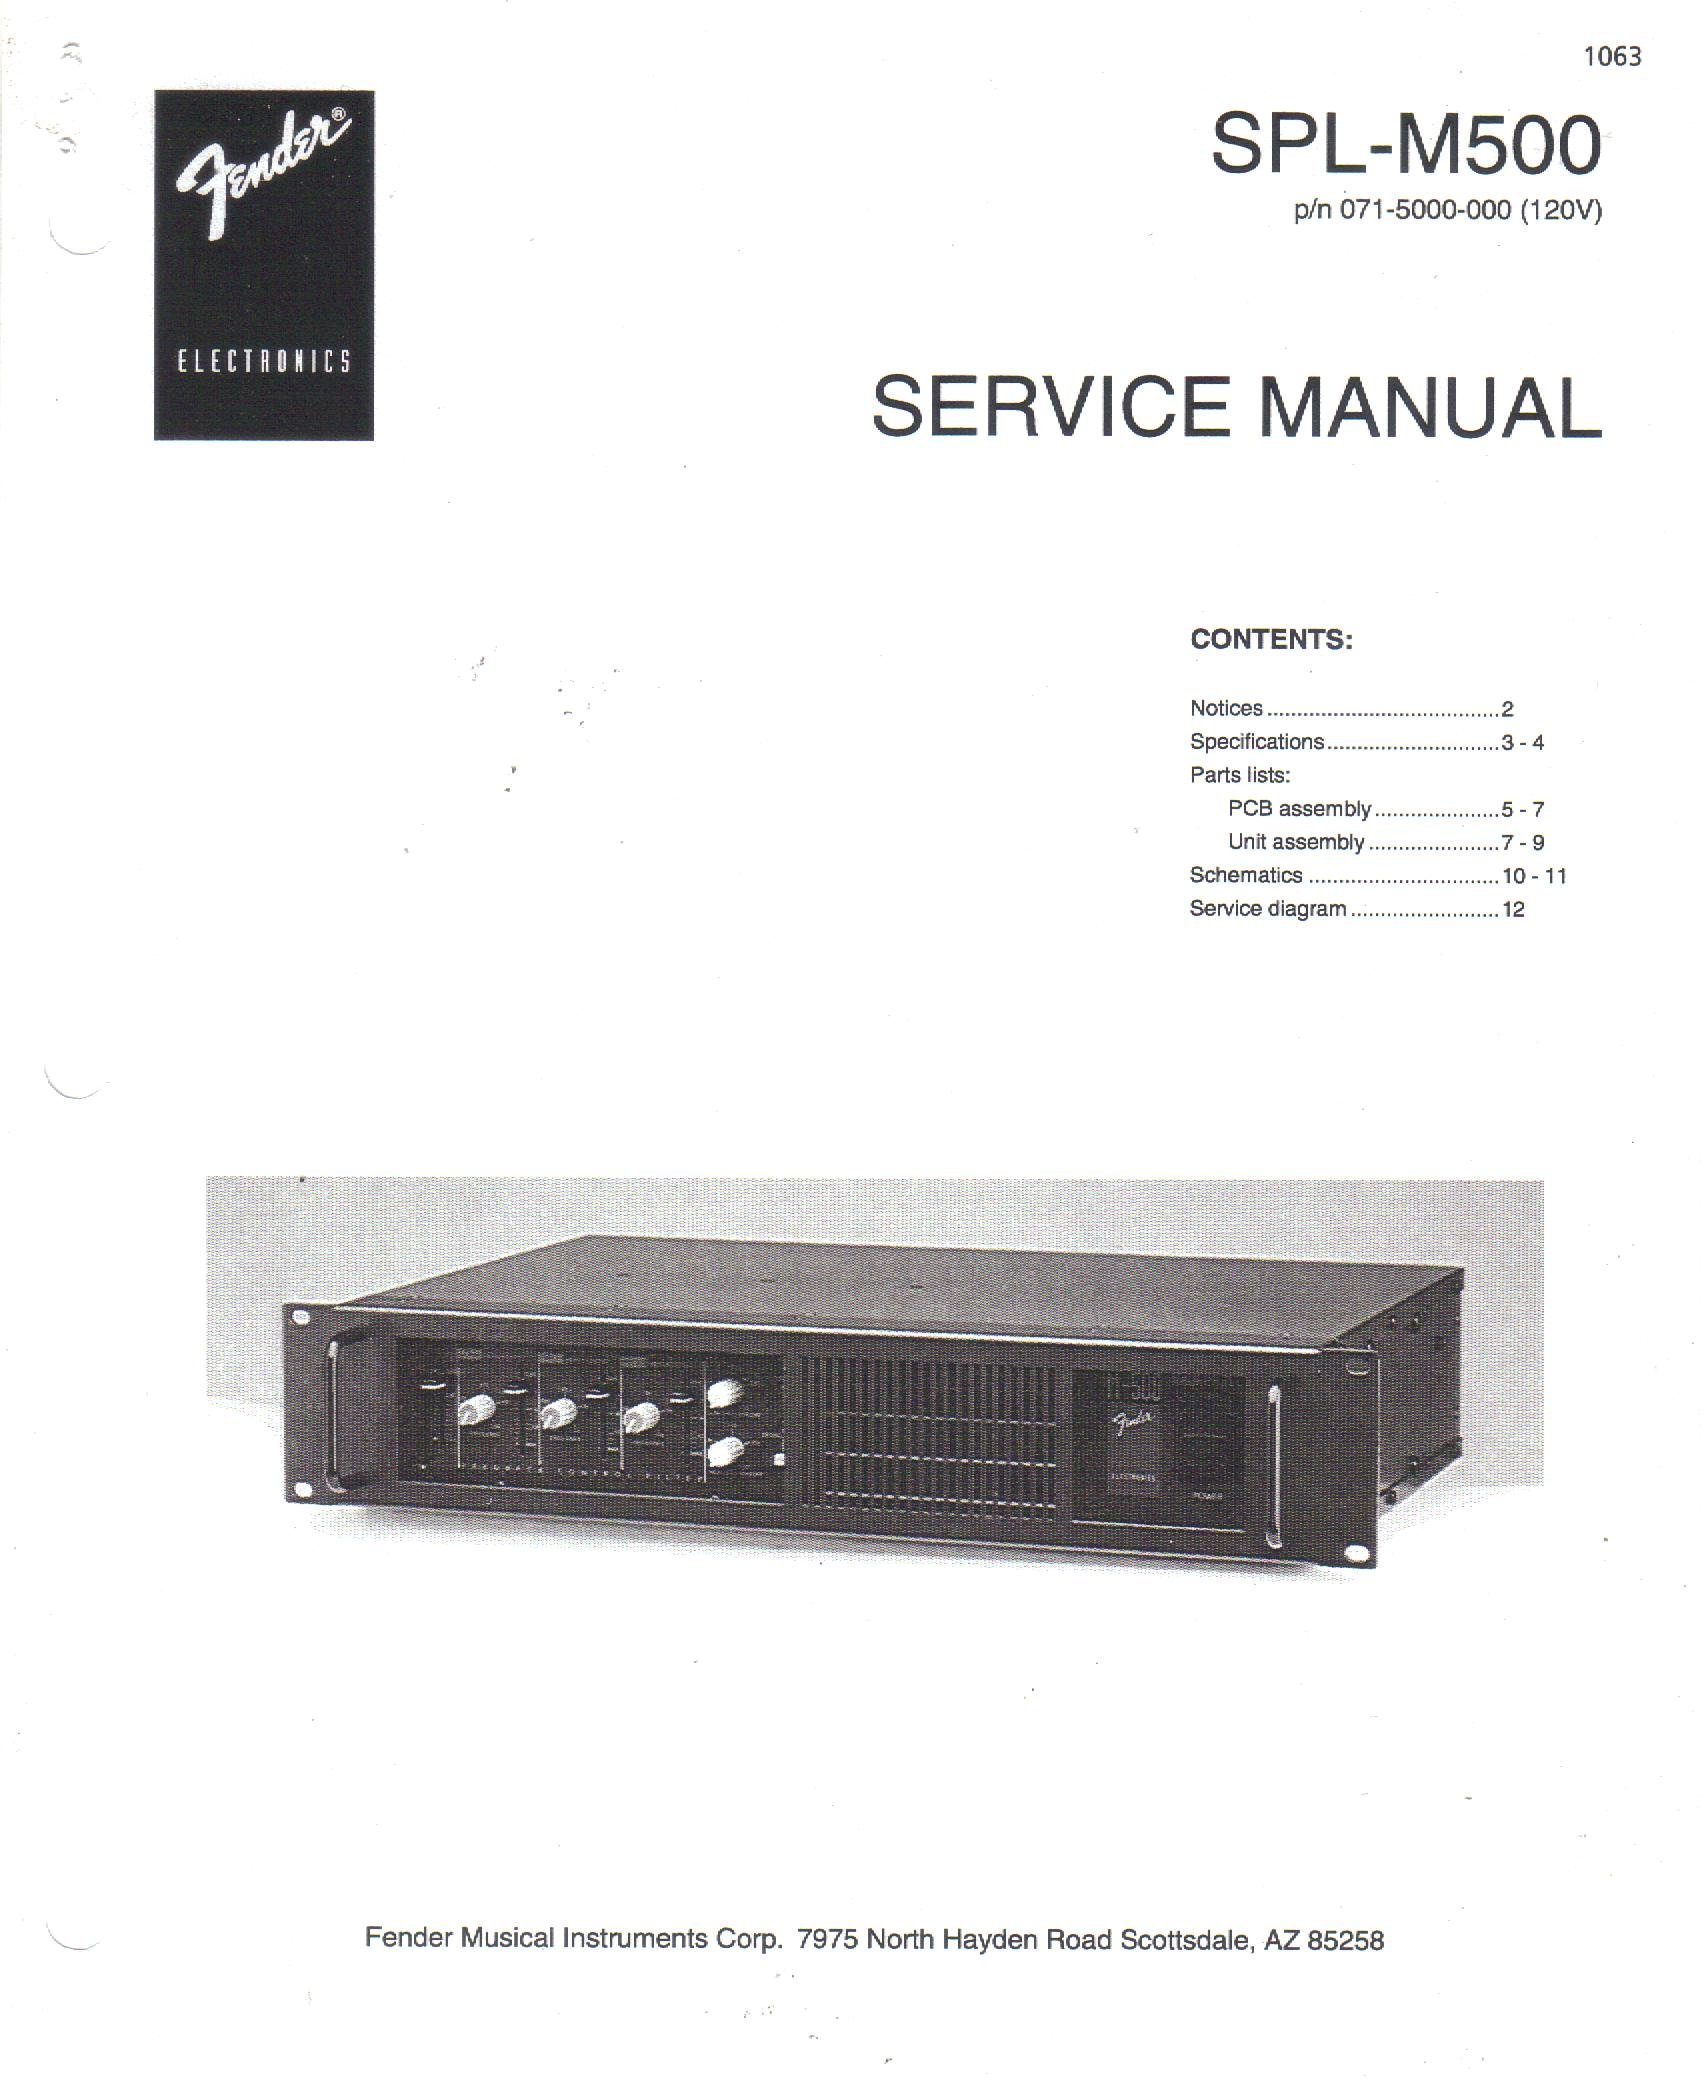 fender spl m500 stage monitor power amplifier service repair manual rh amazon com Fender Sound System Fender Passport 300 Pro Portable PA System